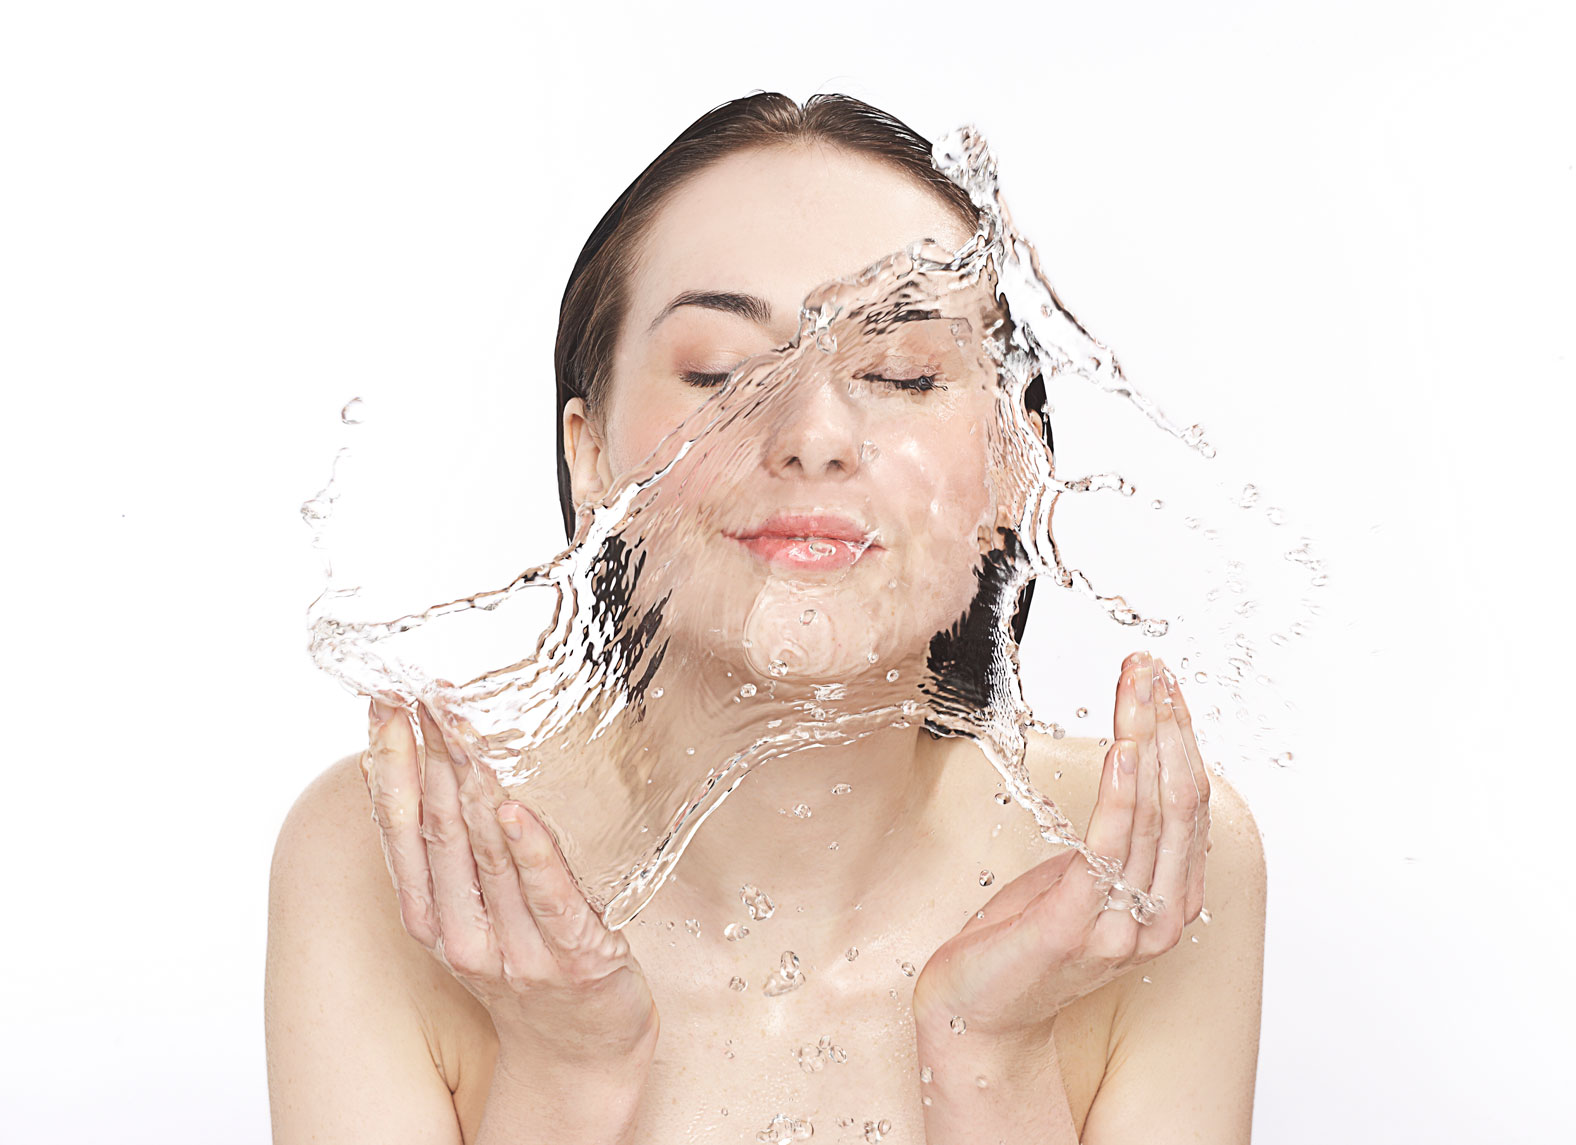 Girl Washing Her Face with Clear Water Photography